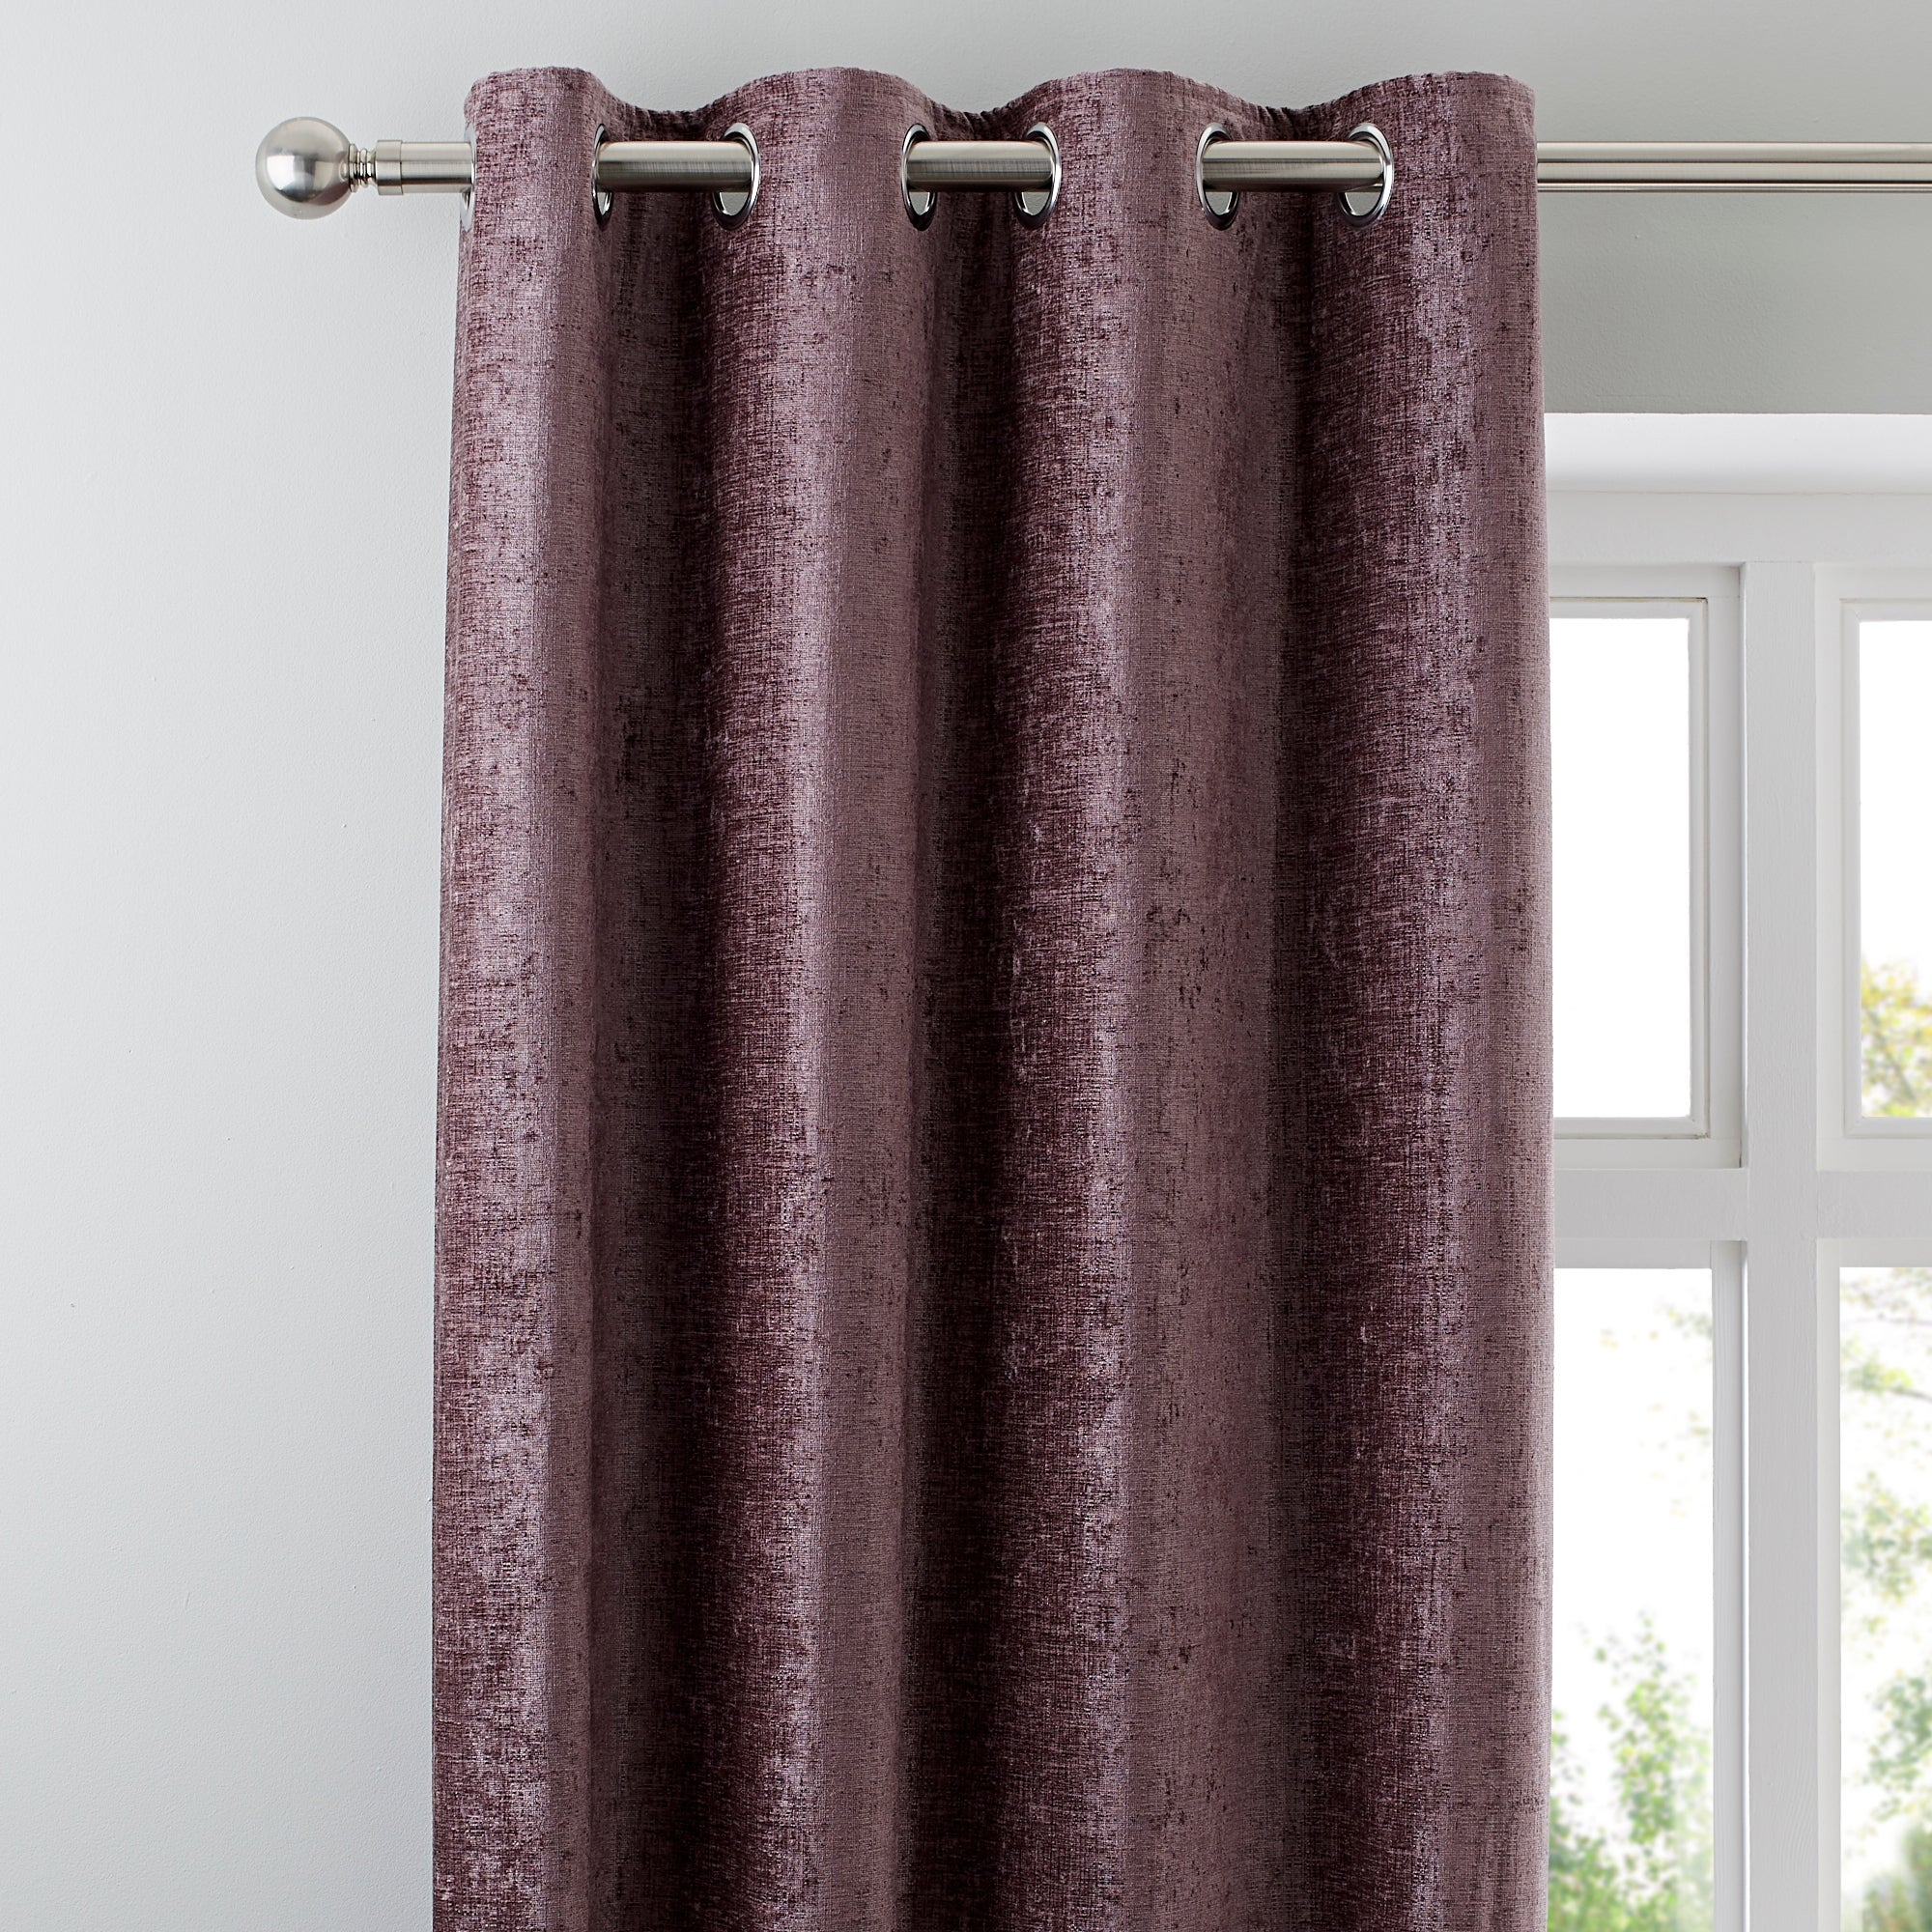 Curtains Ideas burgundy eyelet curtains : Chenille Curtains | Dunelm